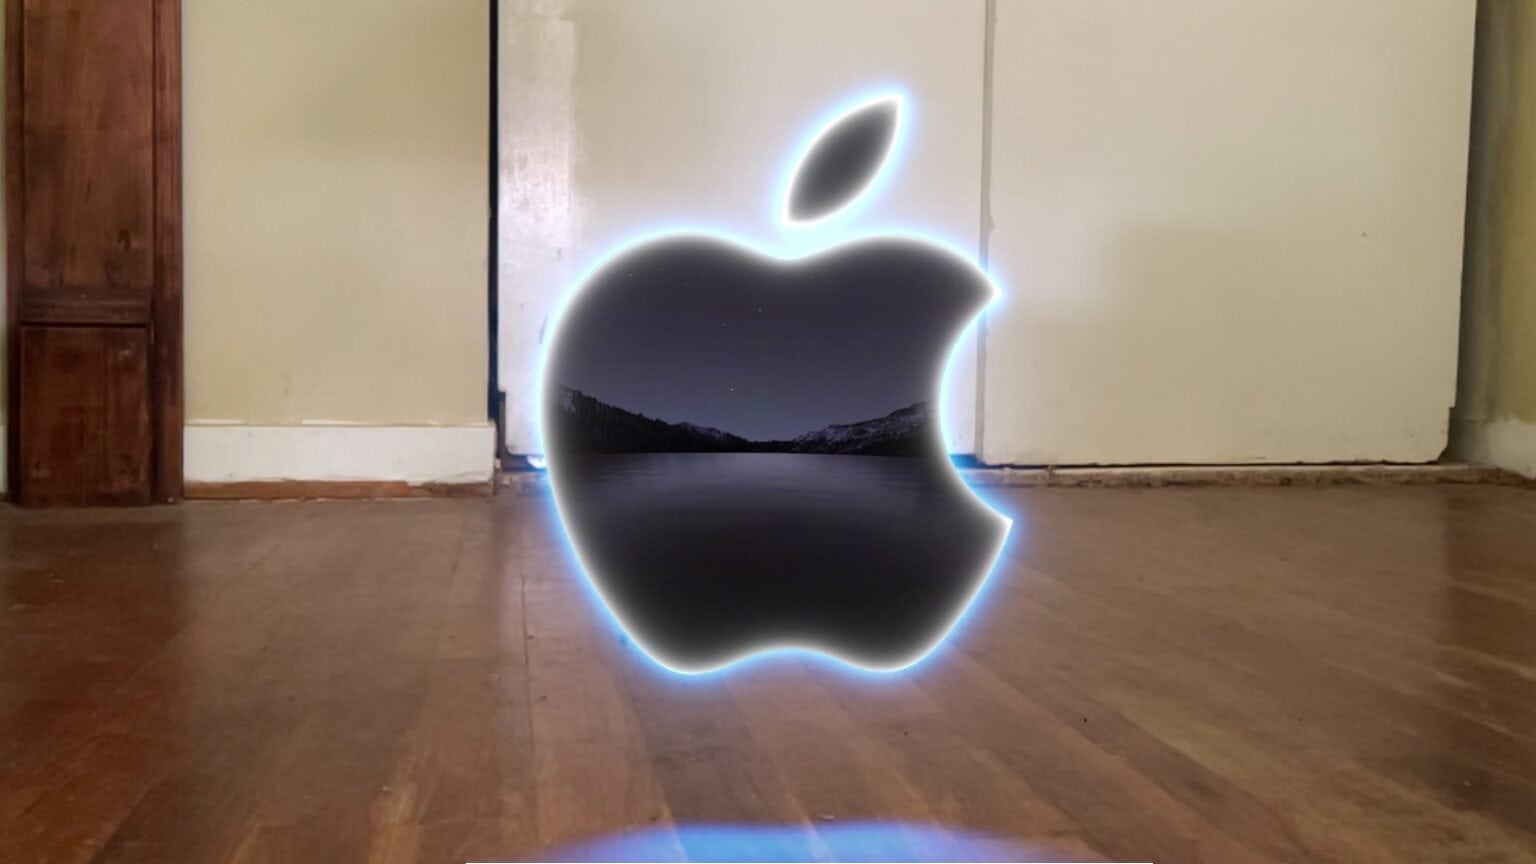 How to see the AR Easter egg in Apple's September 14 event invite